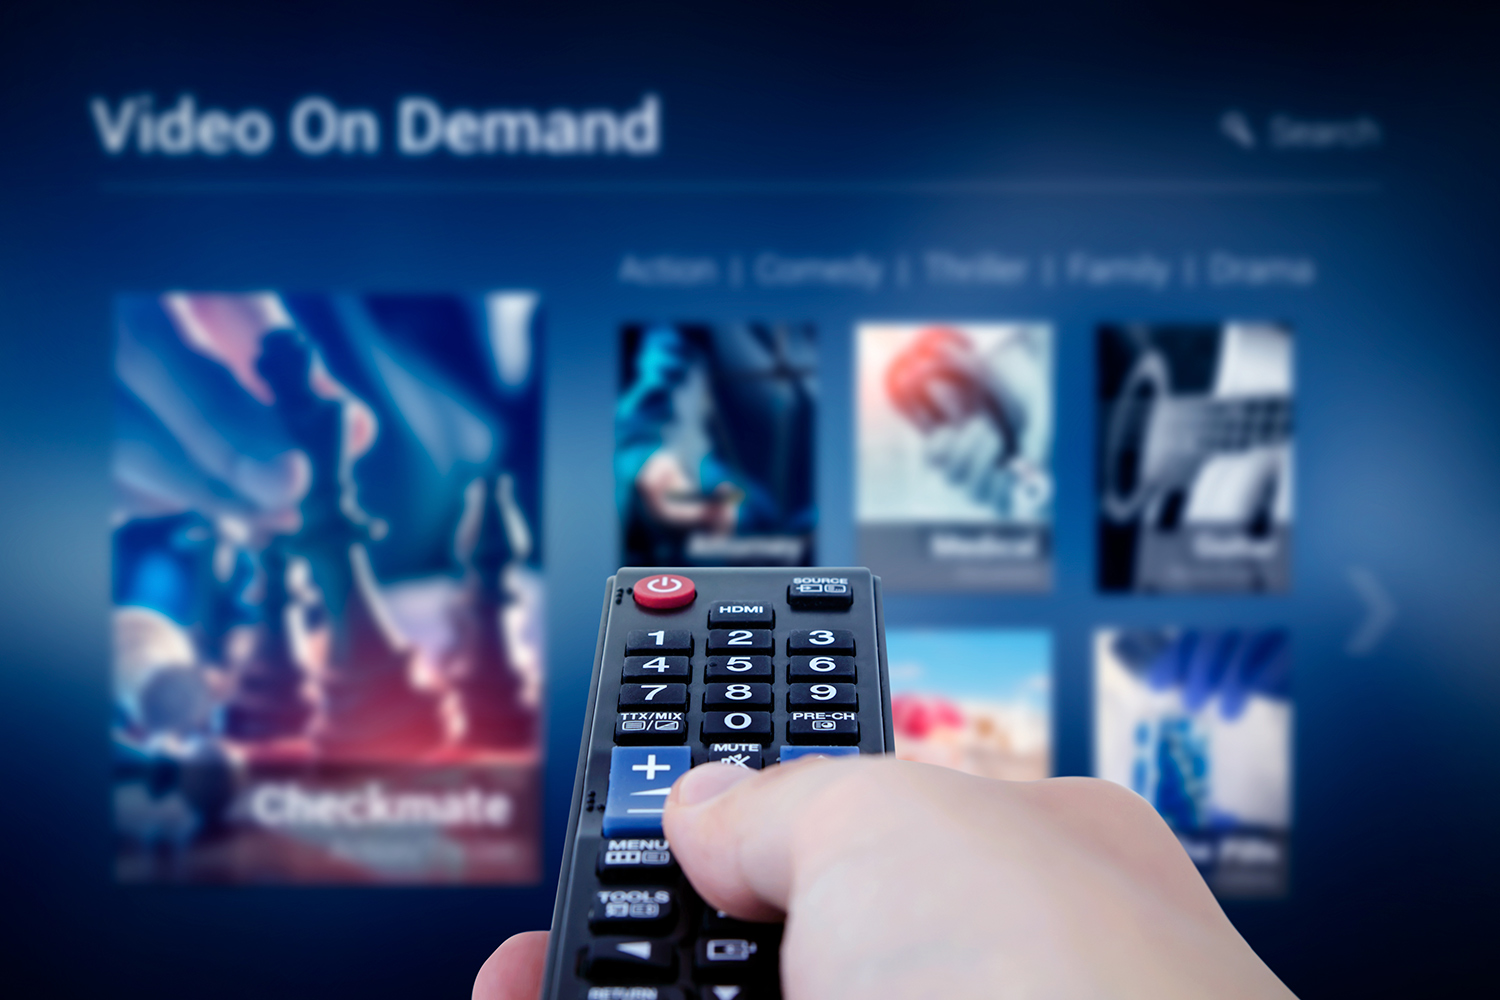 UK Entertainment on Demand